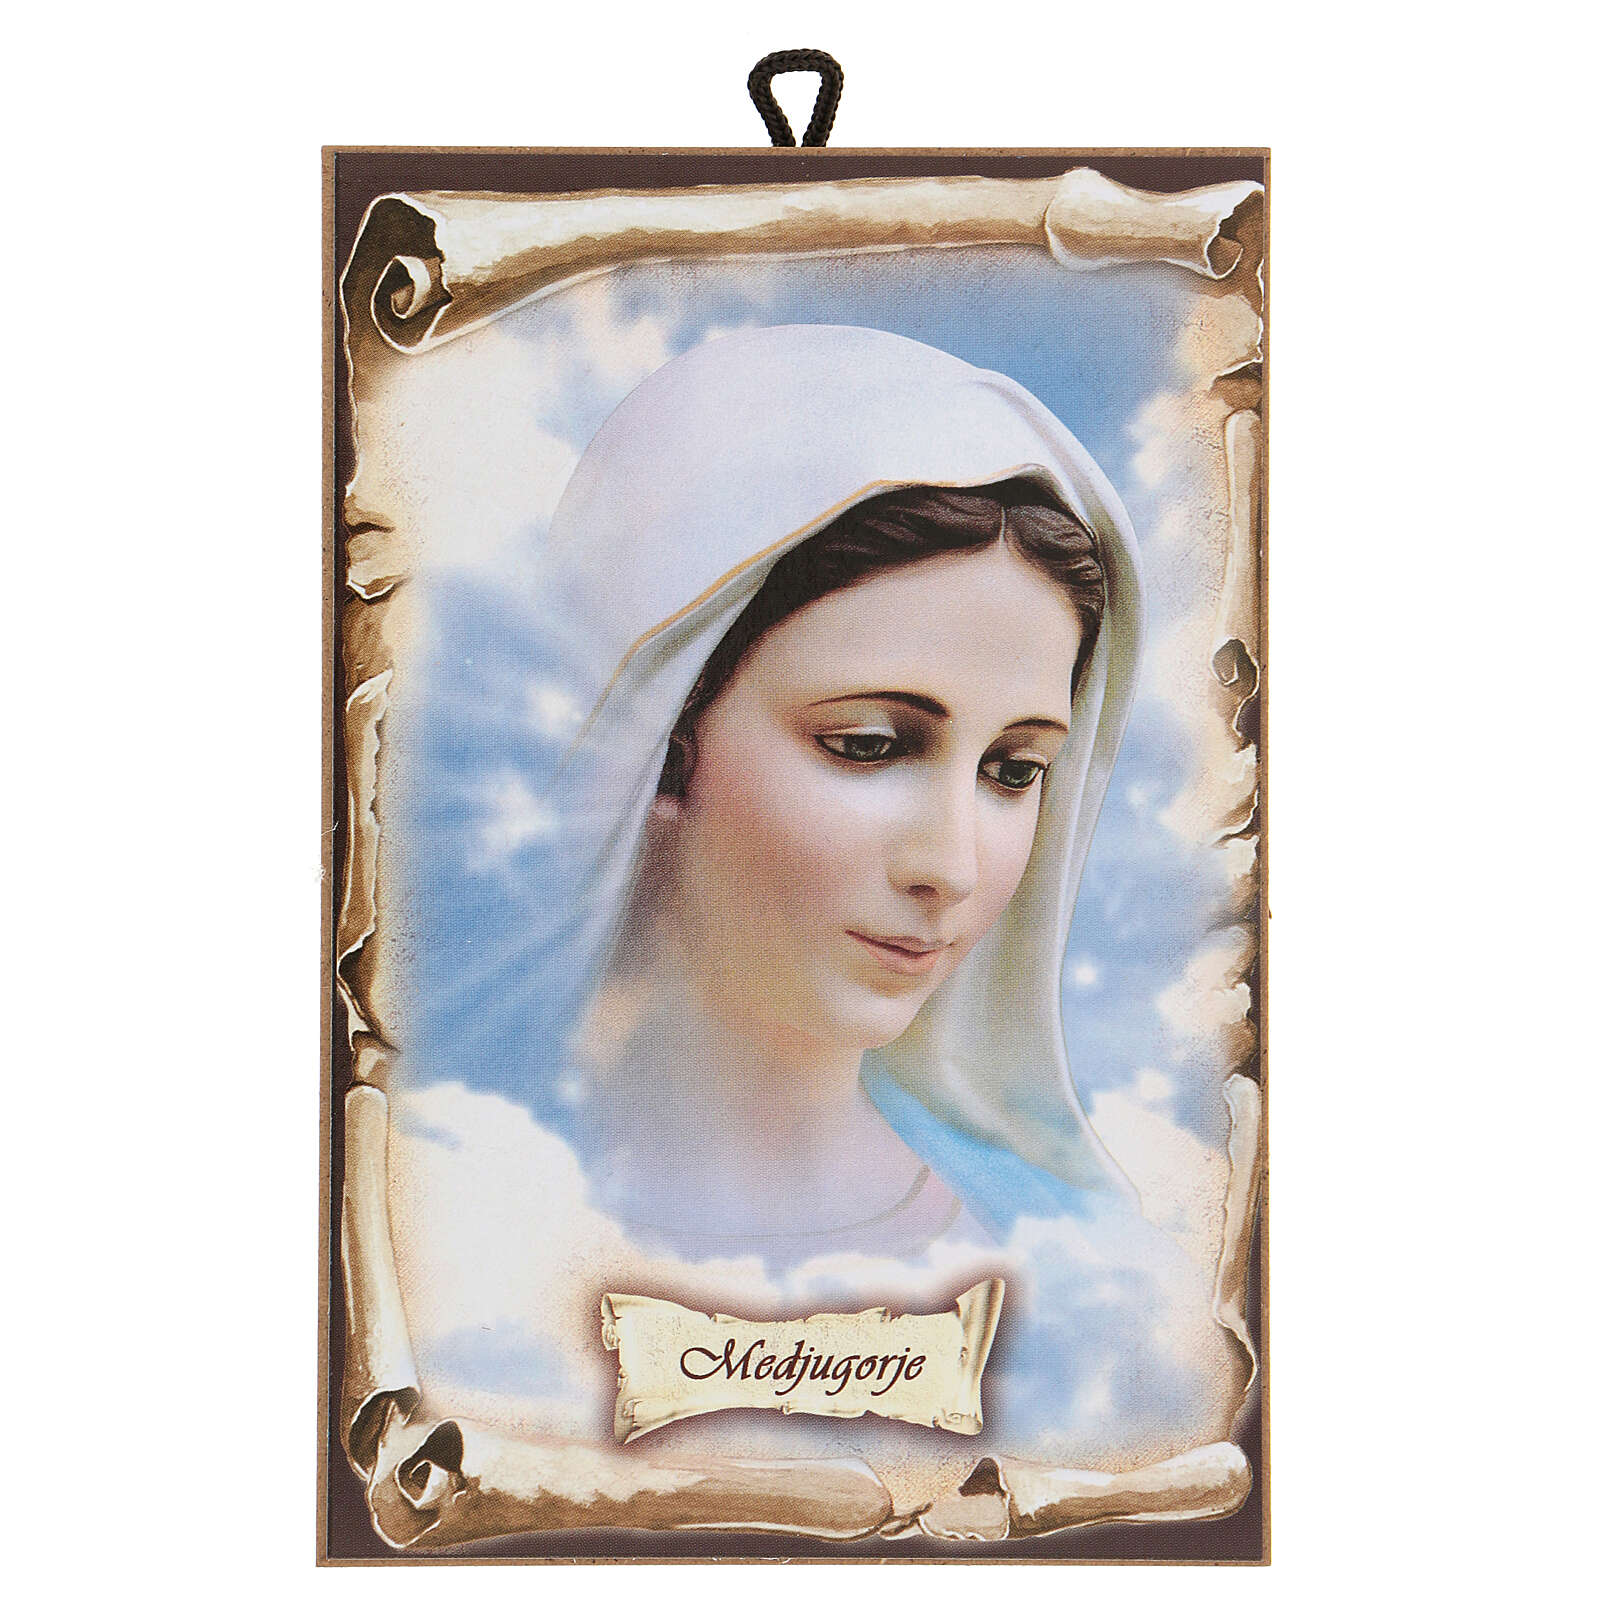 Our Lady of Medjugorje picture hardboard 15x10 cm 4